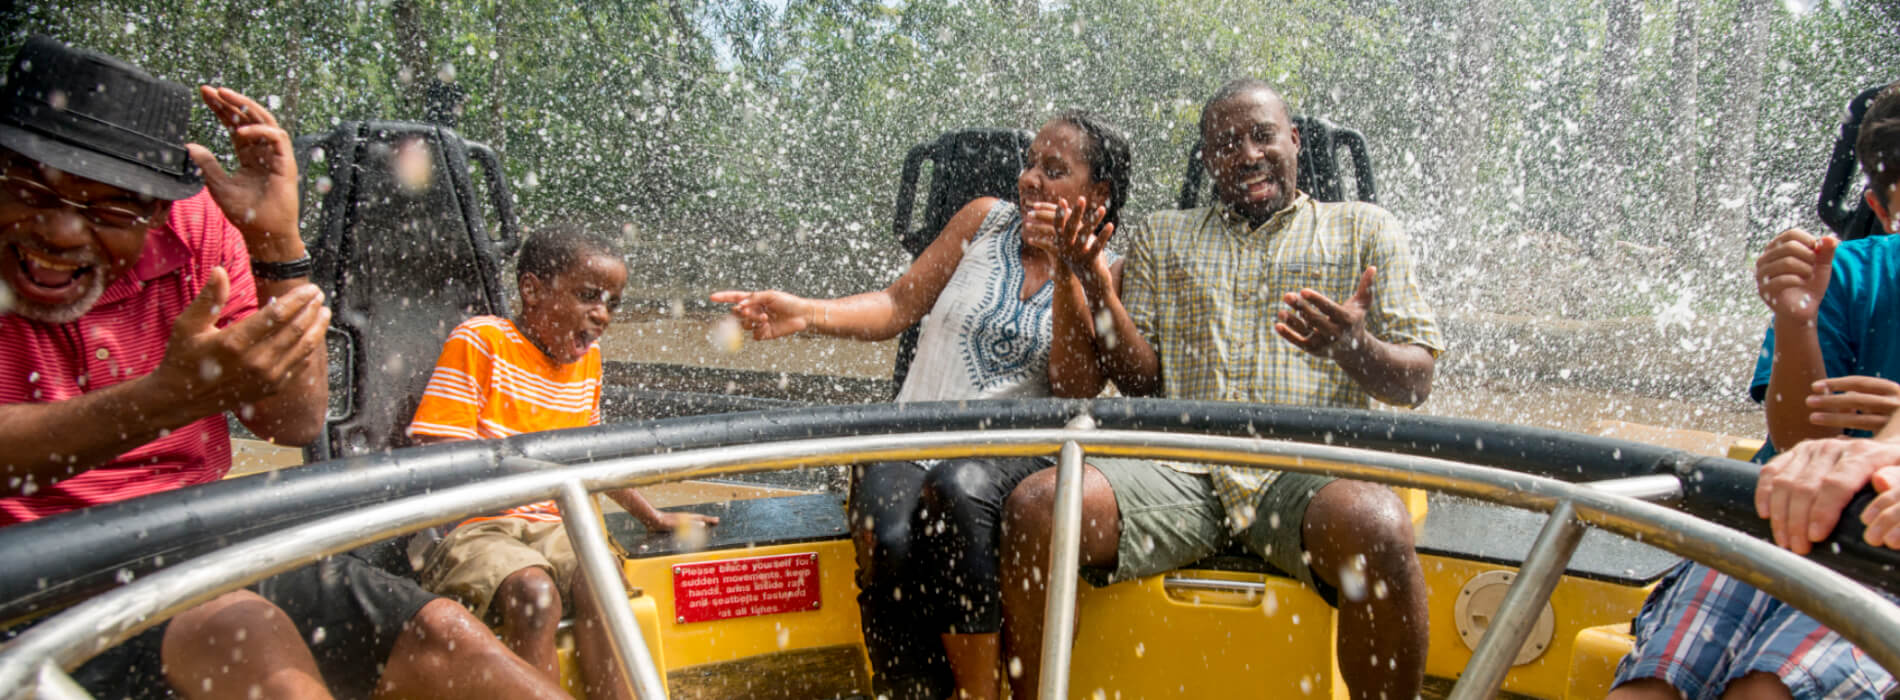 A family feels the water splash onto them as they sit on a yellow and black water ride called Congo River Rapids at Busch Gardens Tampa Bay theme park, located in Florida.